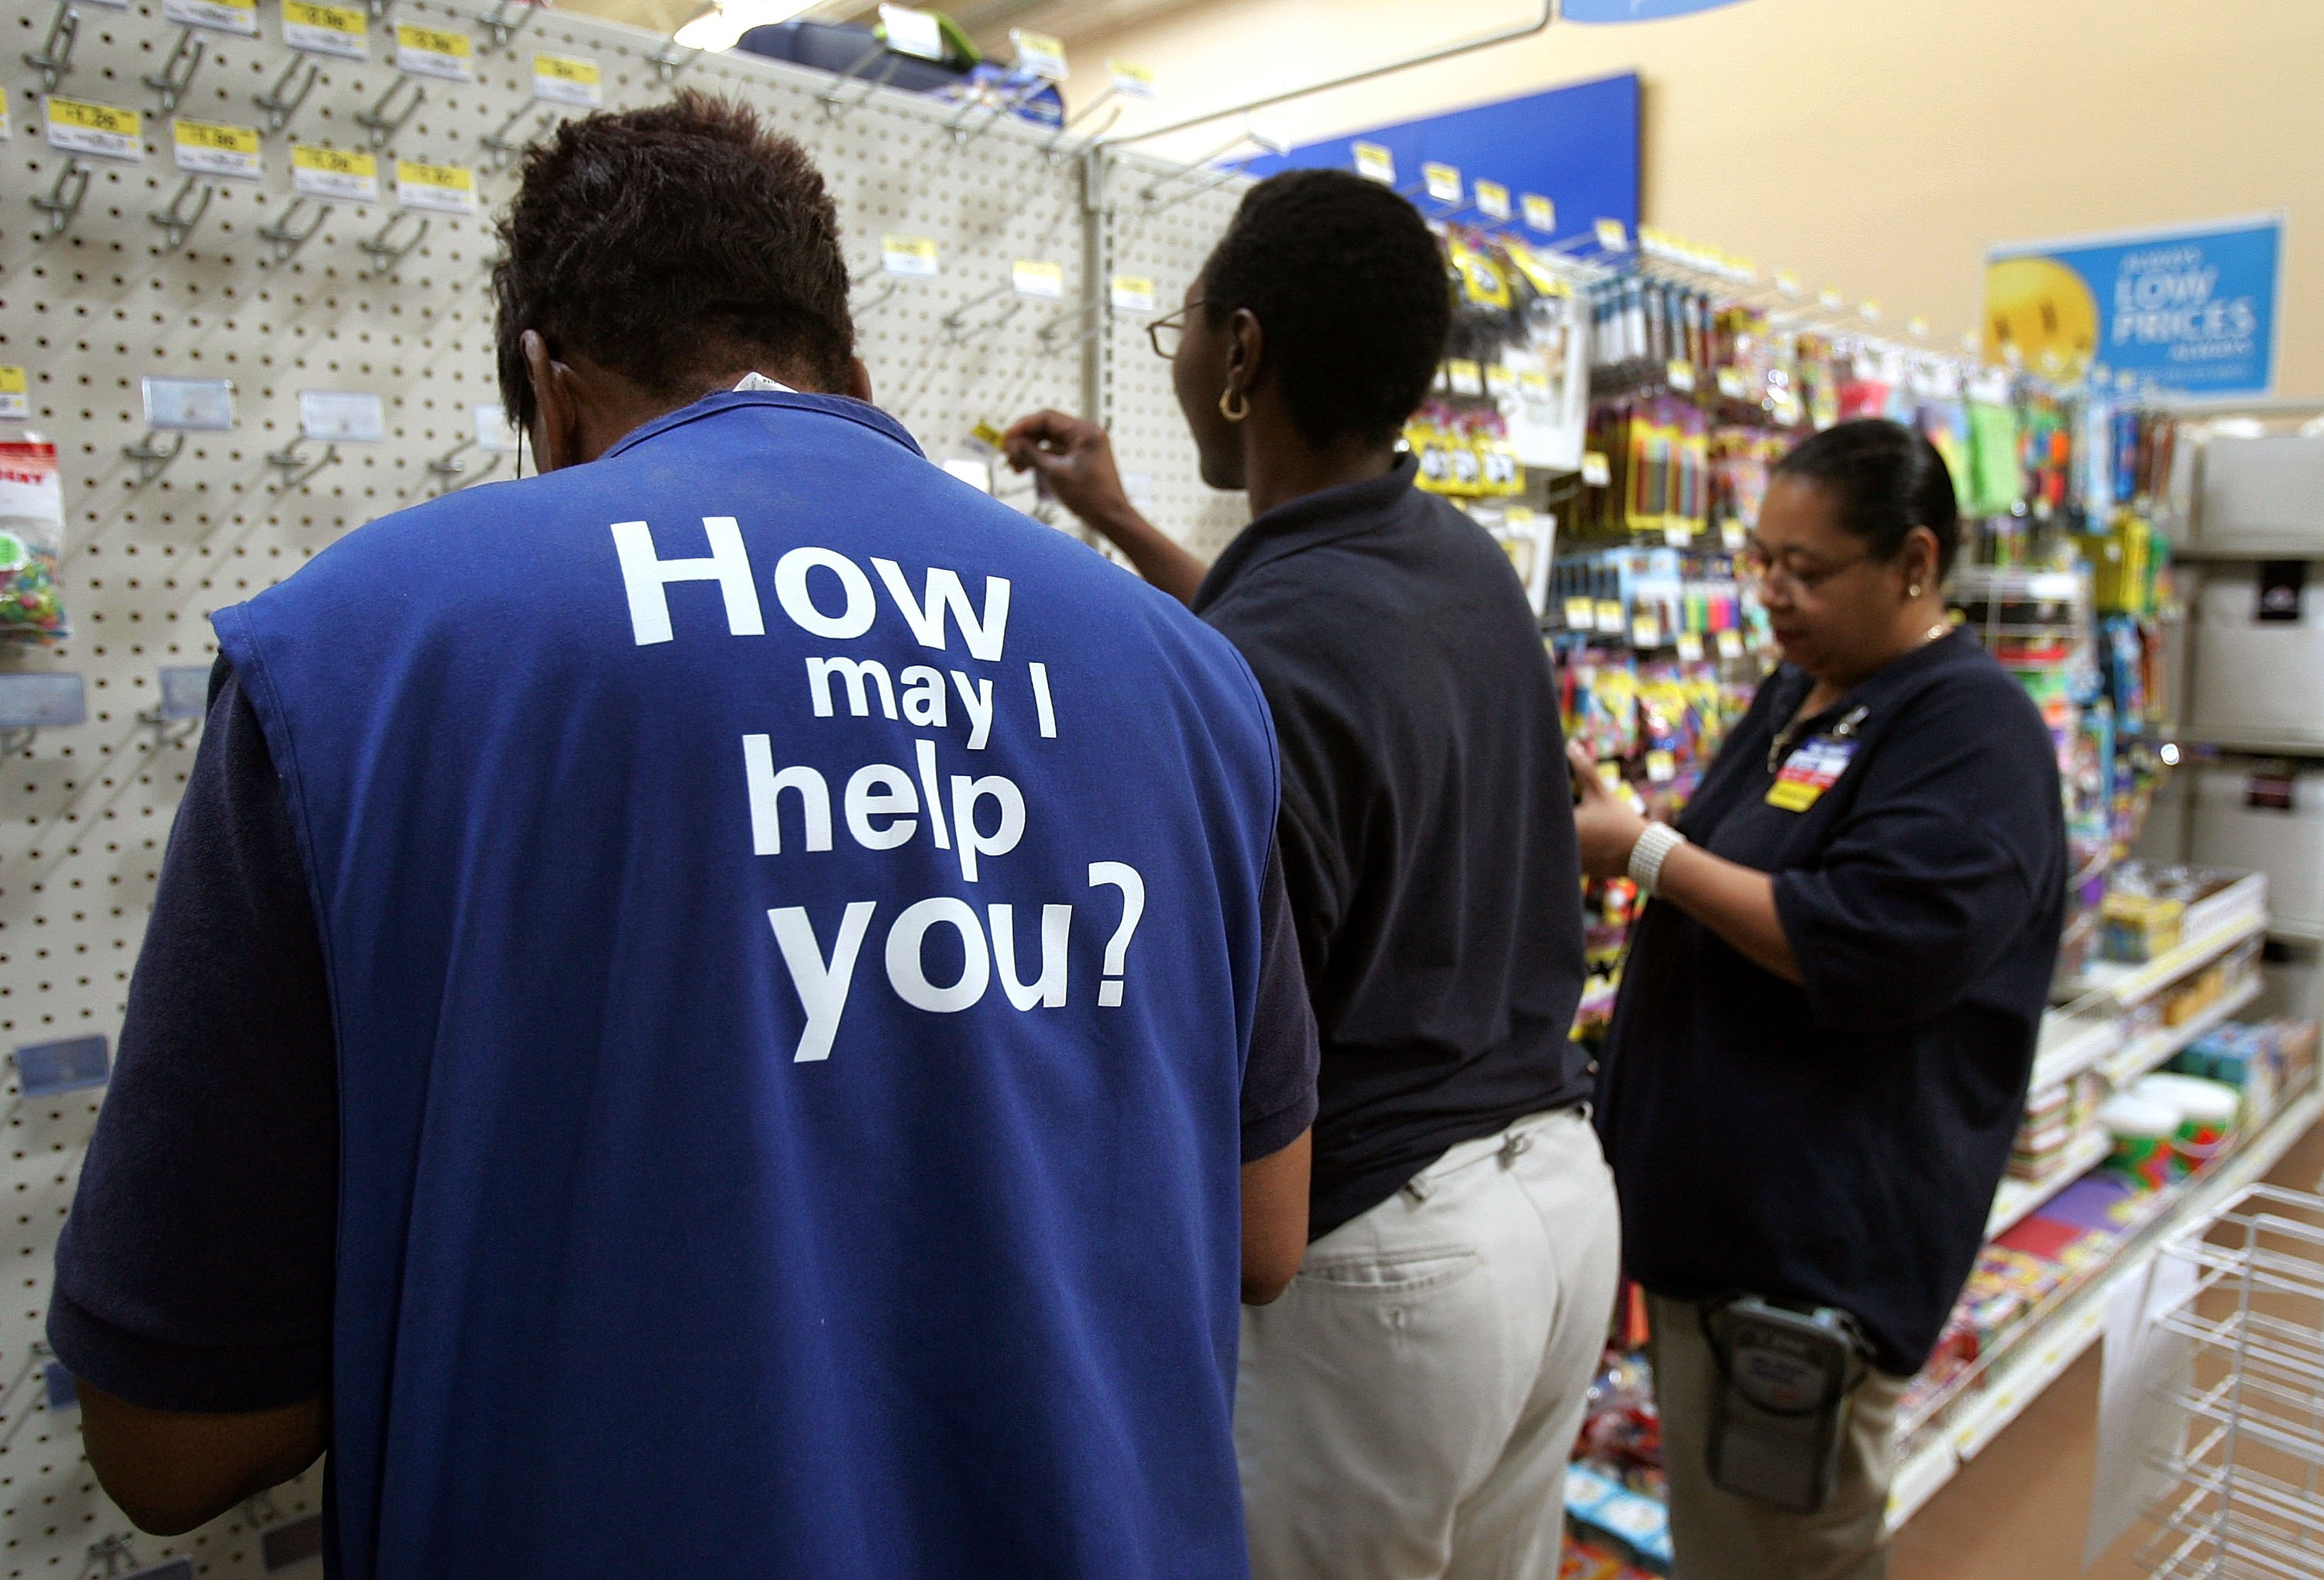 wal mart employee reward system 'reward system refers to all the monetary, non-monetary and psychological  rewards the us supermarket group walmart competes on low cost it recruits employees with low skills, and pays low wages  systems towards reward systems where at least part of an employee's rewards are based on performance of the individual and the business.